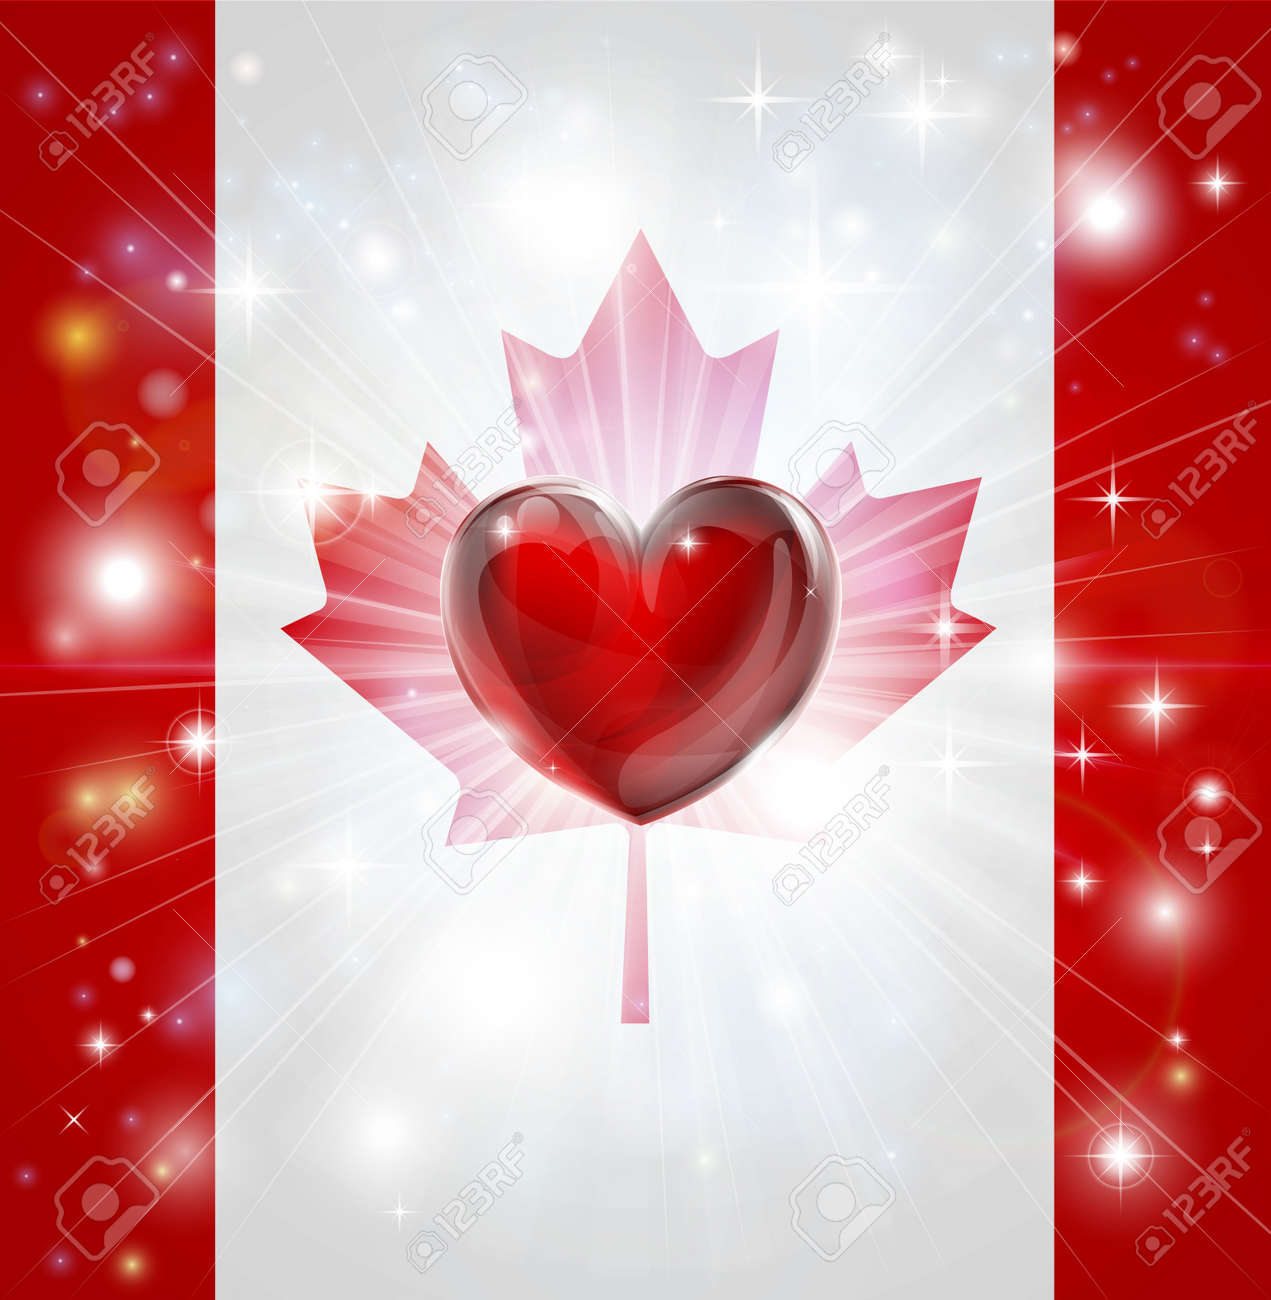 Flag of Canada patriotic background with pyrotechnic or light burst and love heart in the centre Stock Vector - 17819191